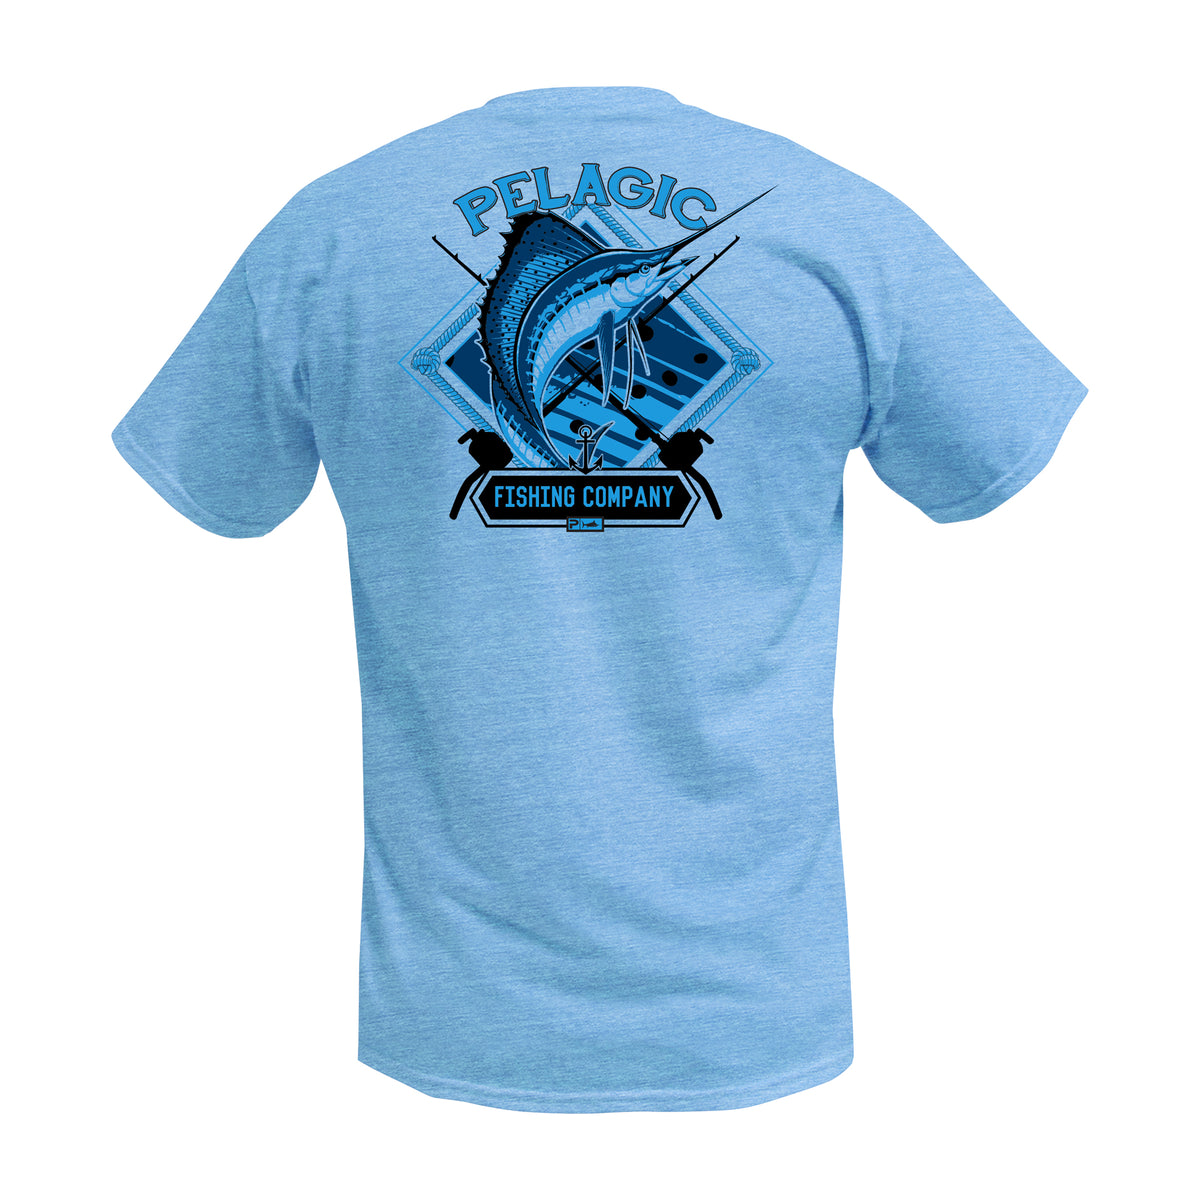 Sailfish Company Fishing T-shirts Big Image - 1